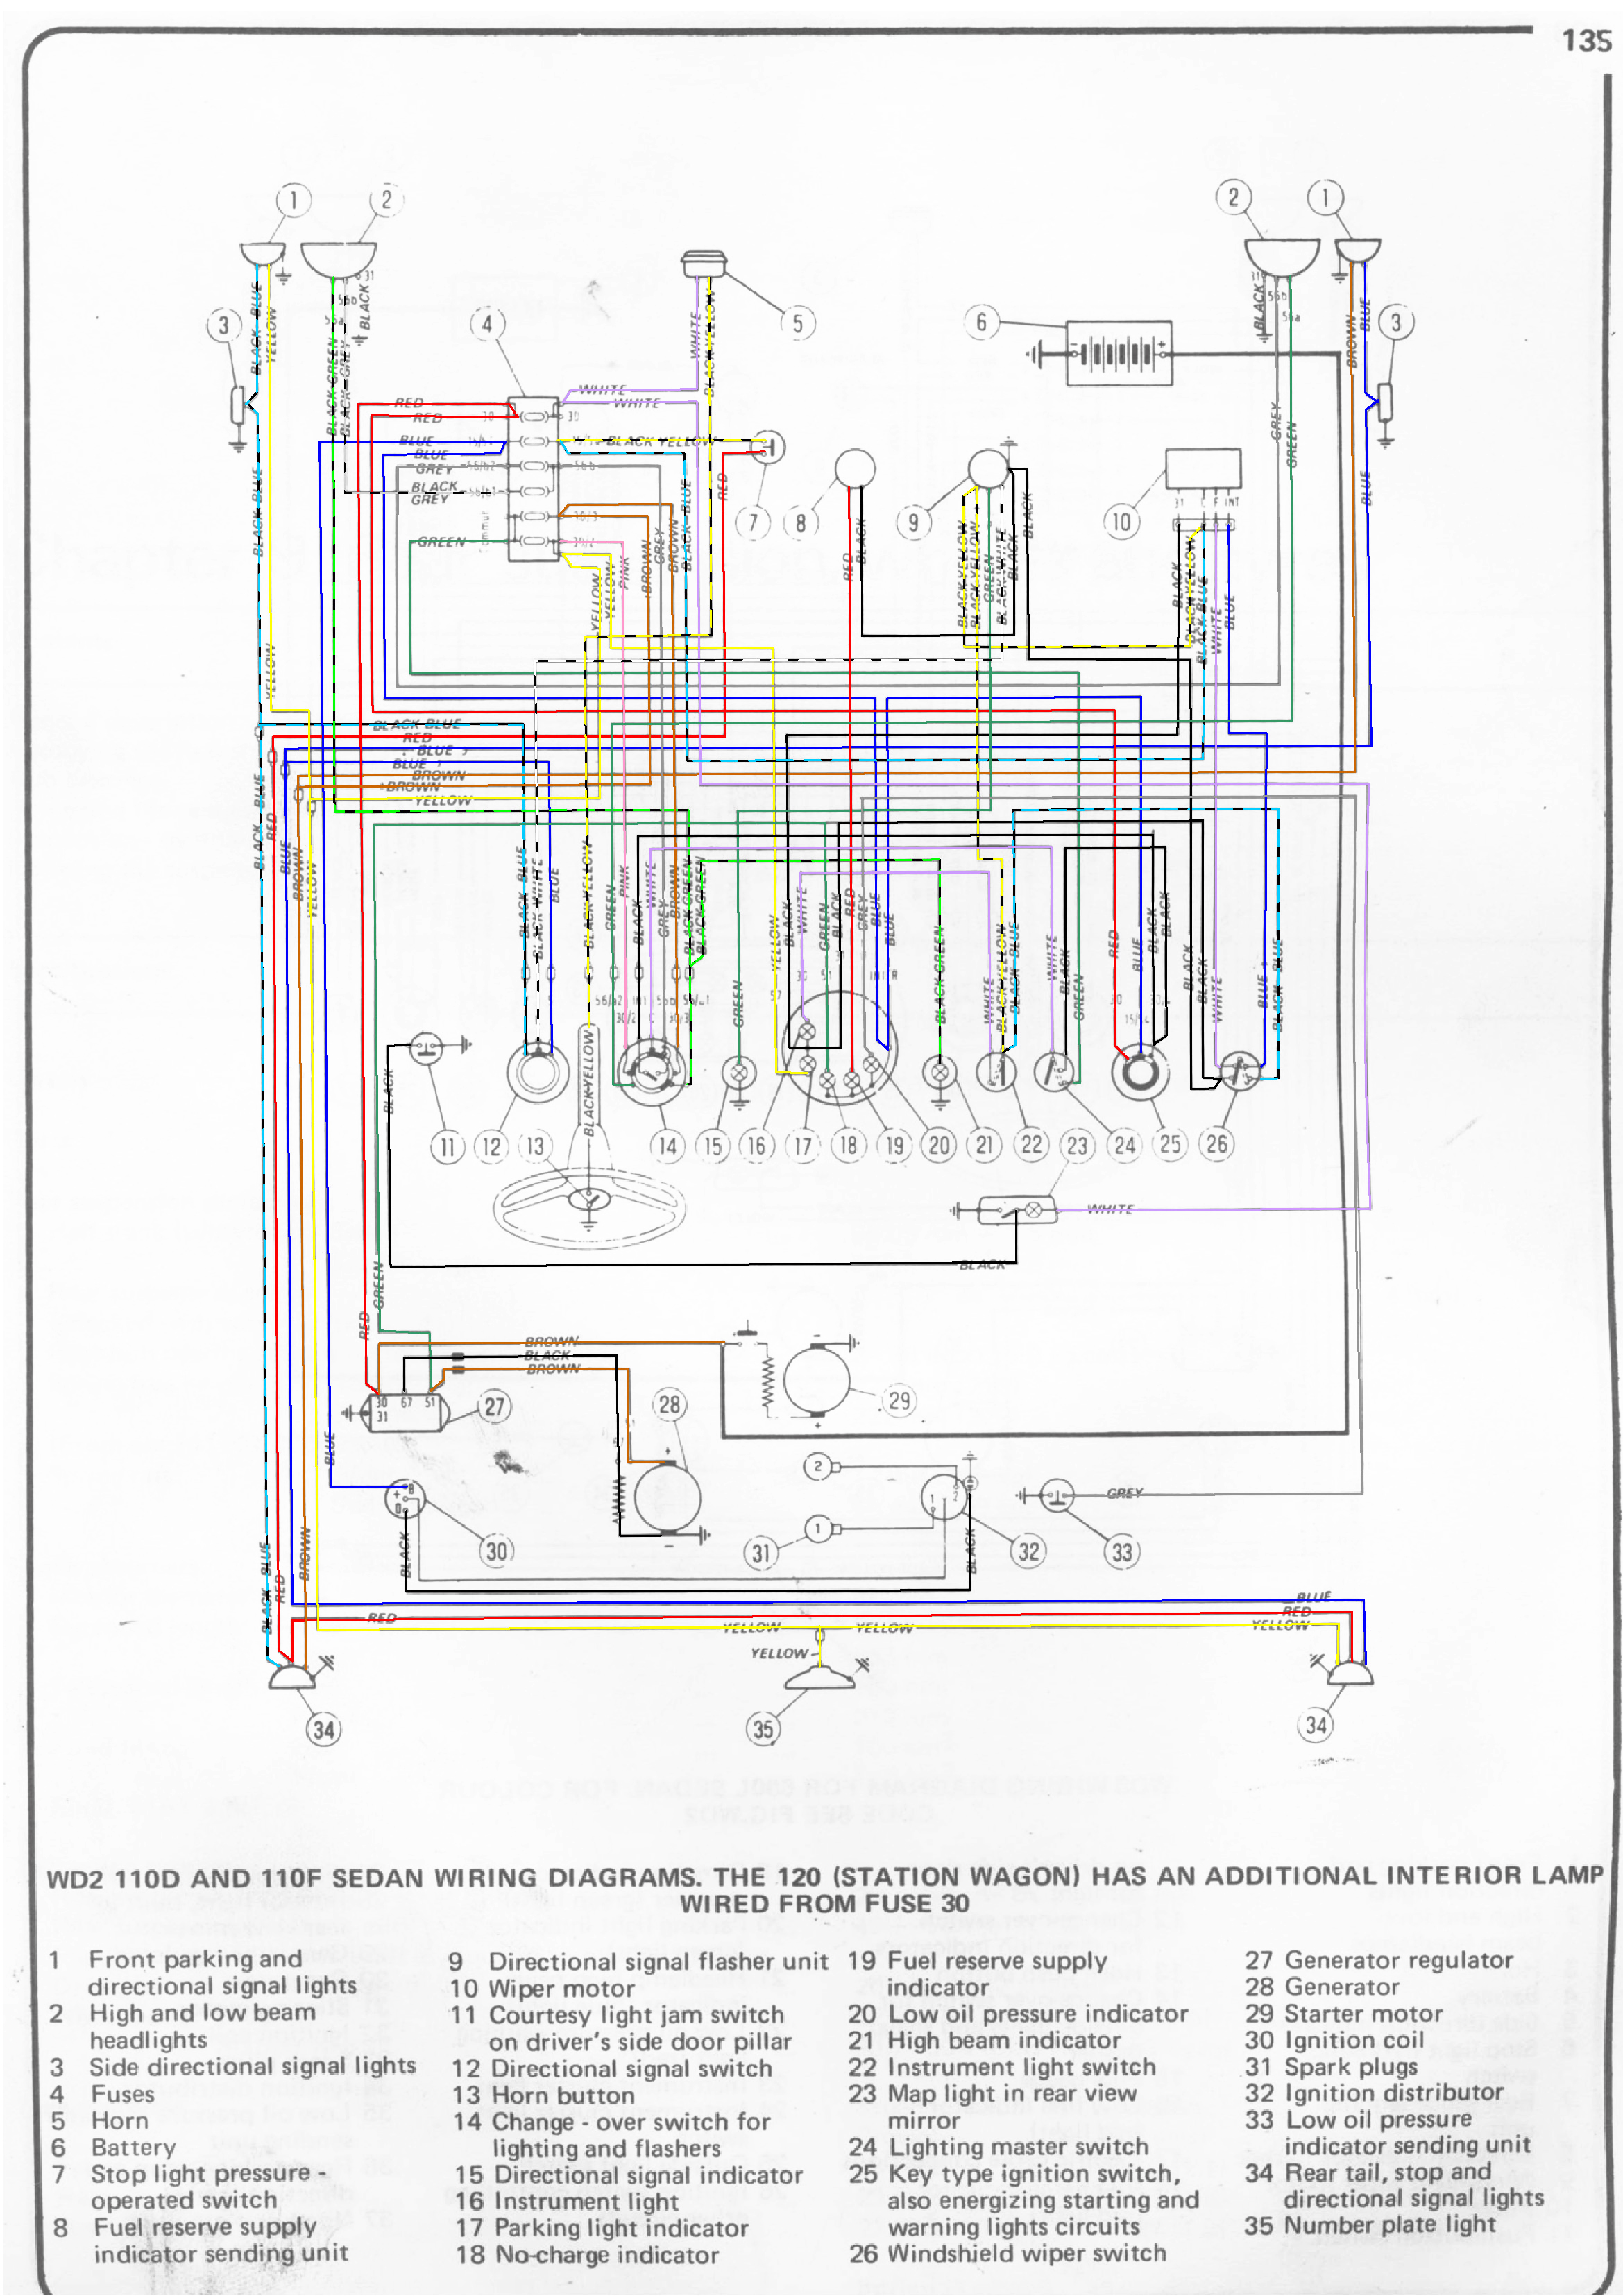 Fiat Cinquecento Wiring Diagram Libraries Directionals For Rat Rod 500 Third Level1967 Diagrams